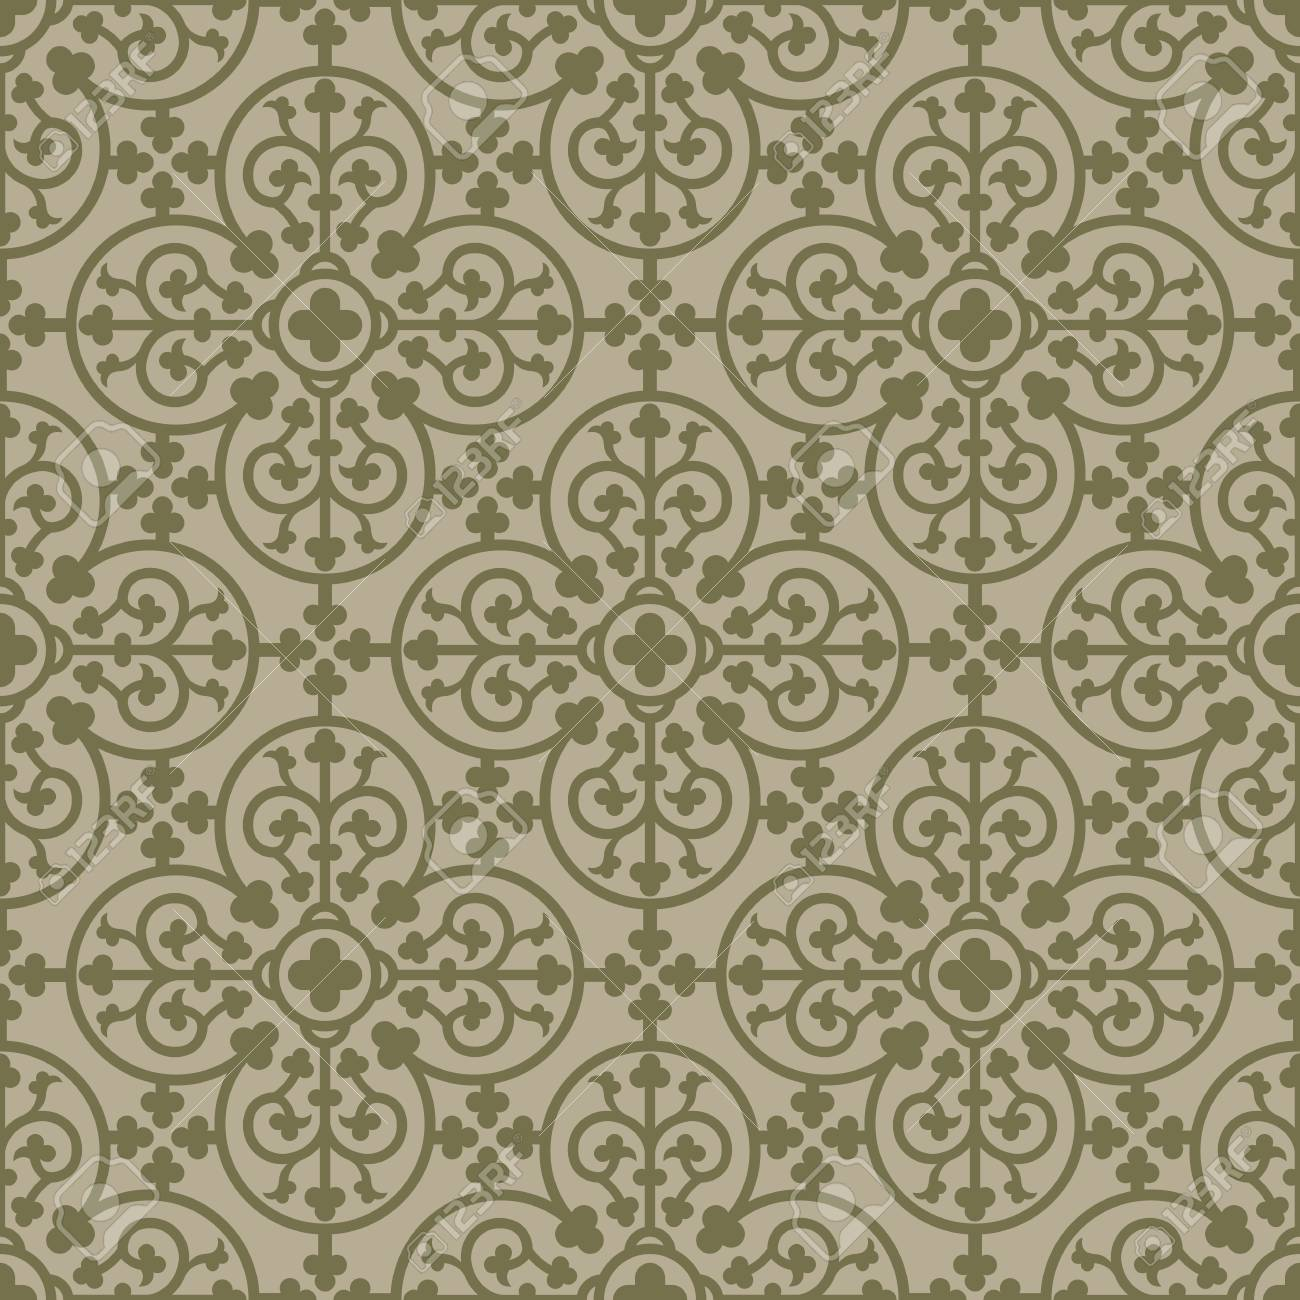 Royal Elements In A Gothic Style Ornament For Tiles And